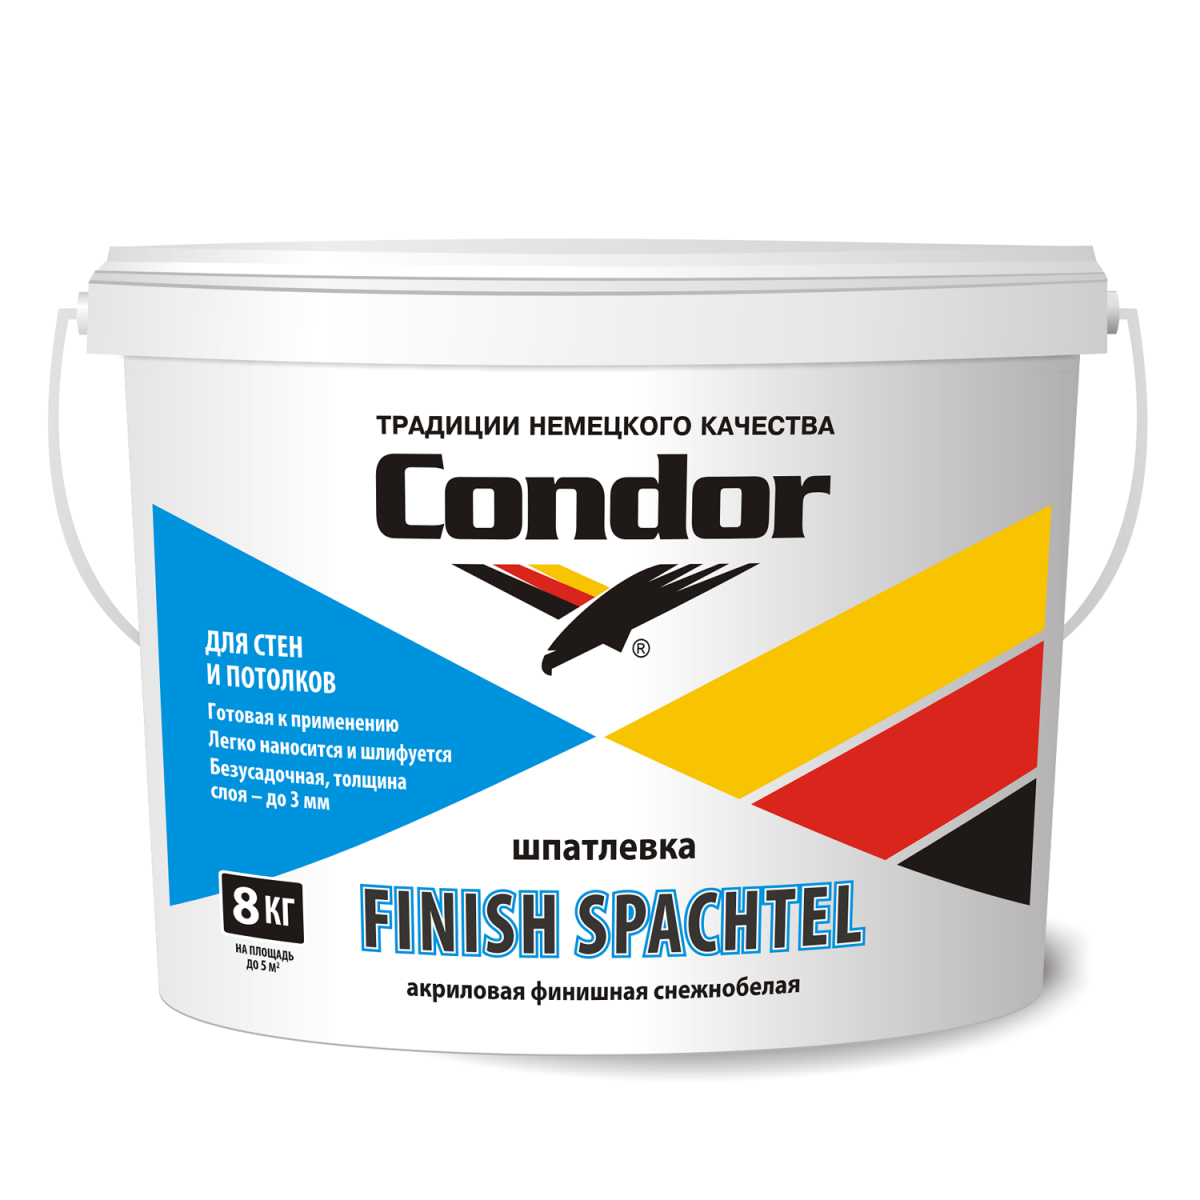 condor finish-spachtel model hi